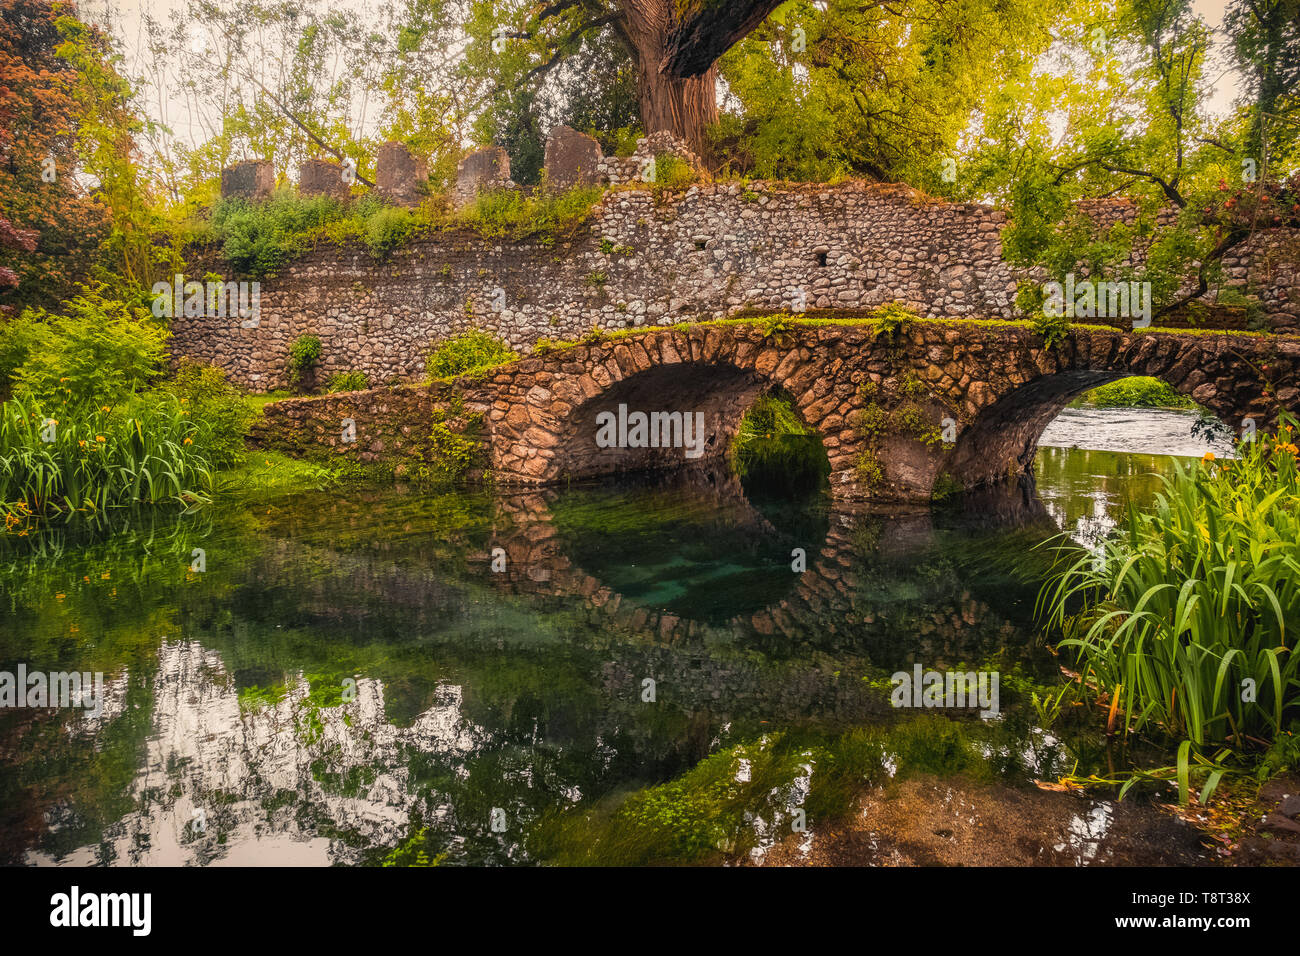 dreamlike medieval fantasy forest fairy landscape river bridge - Stock Image